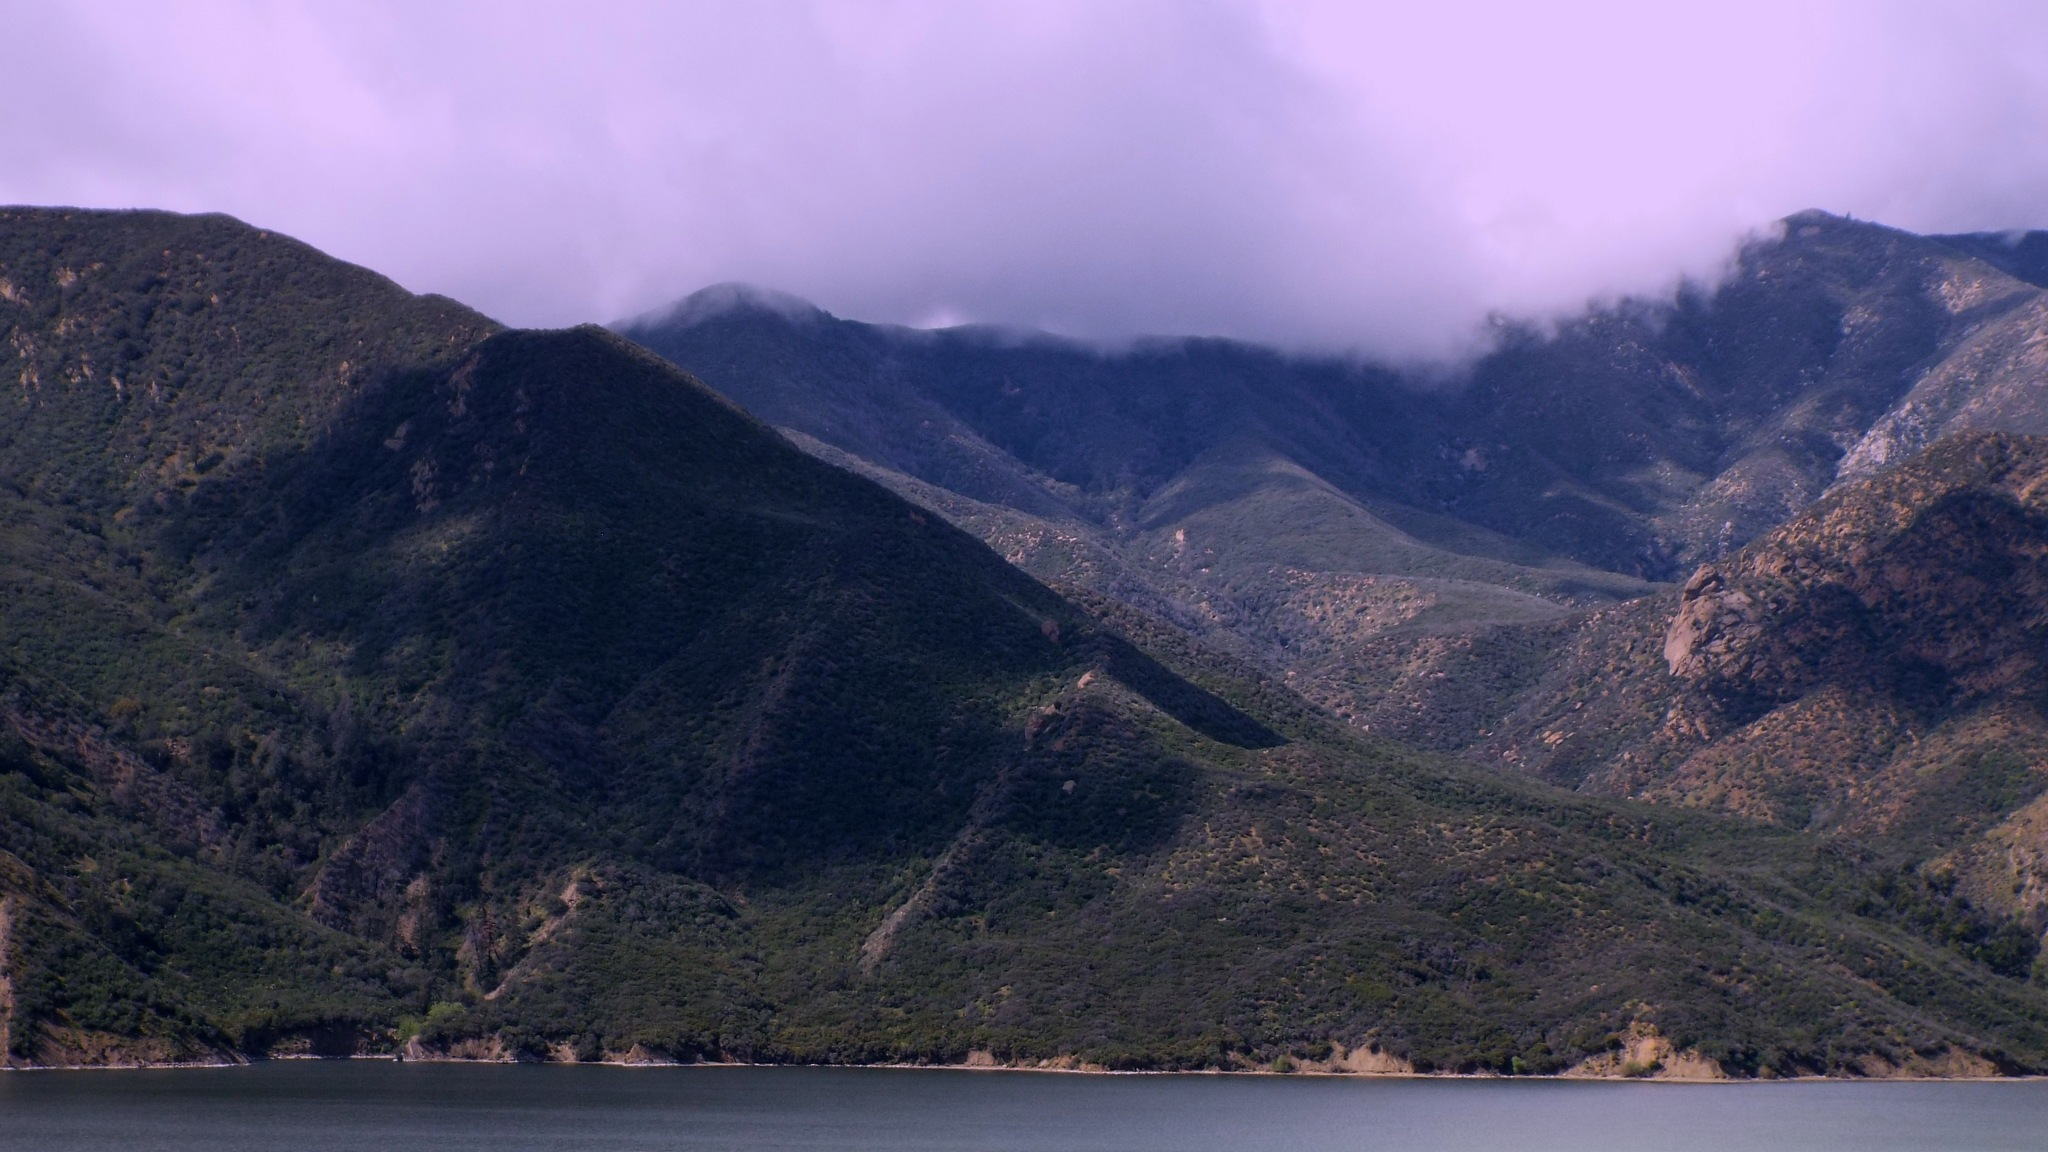 VIEW OF THE LAKE, ON THE WAY TO LOS ANGELES by Akin Saner